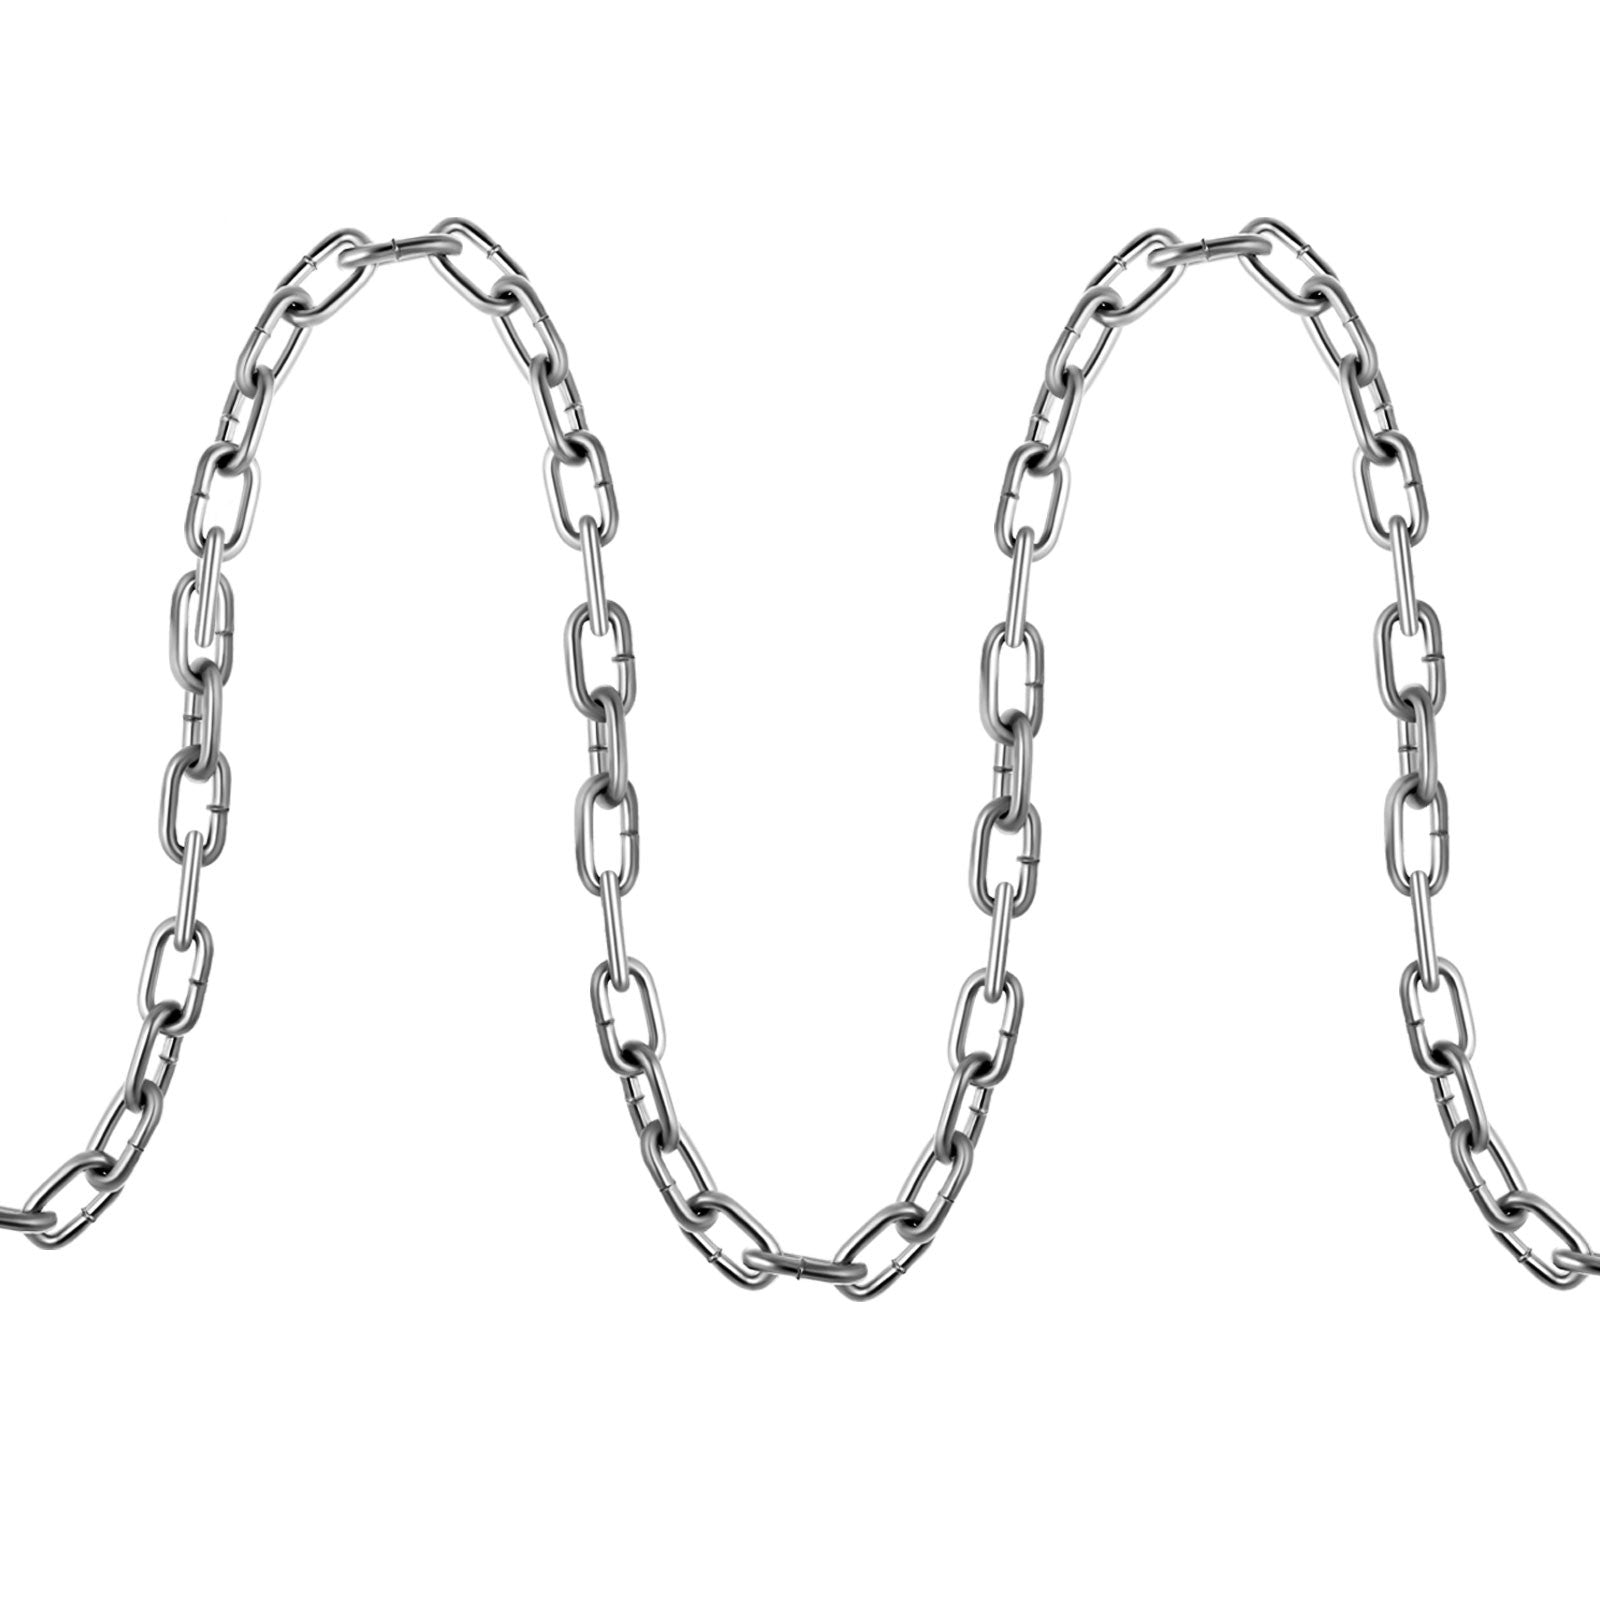 "Chain Sling Zinc Plated G30 2/5"" 50' Proof Coil Chain"